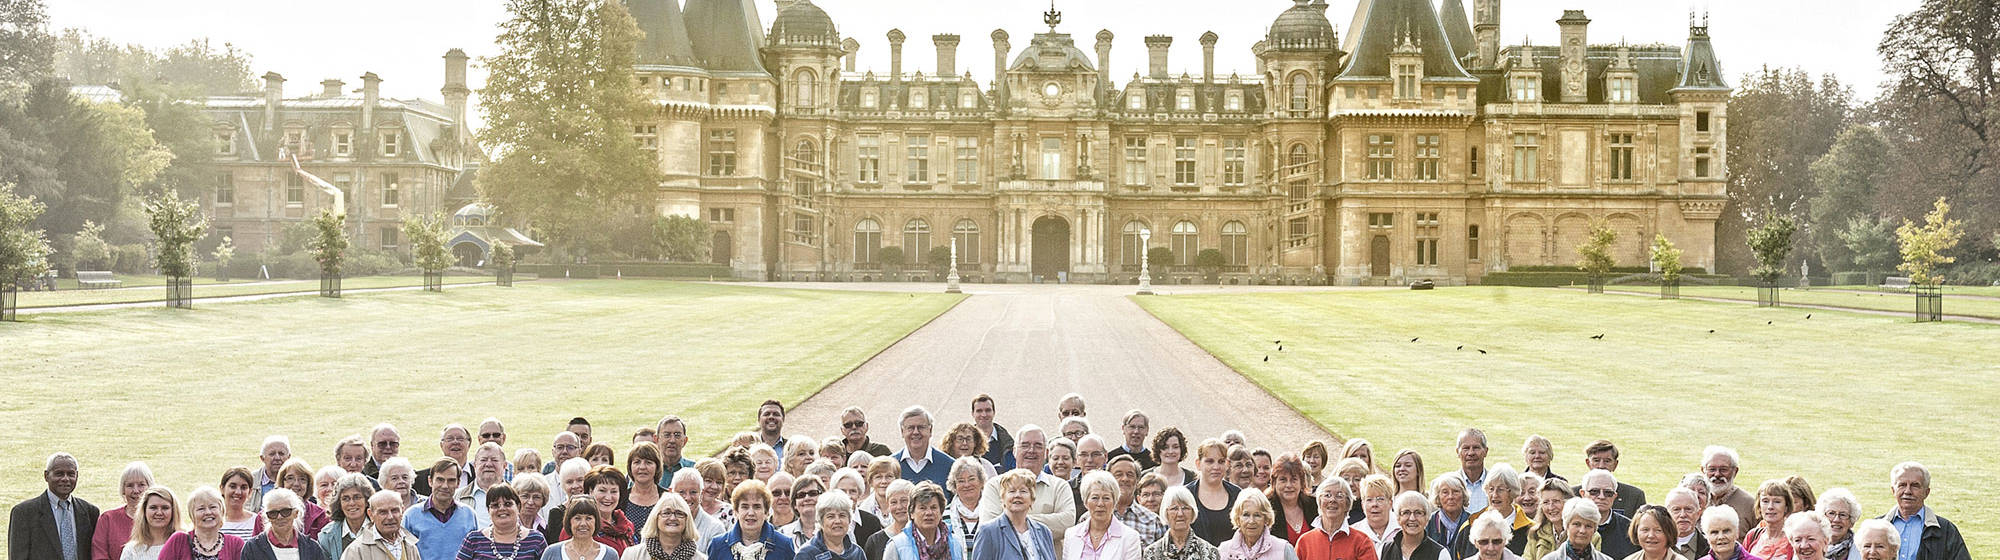 Group of volunteers standing in front of Waddesdon Manor north front